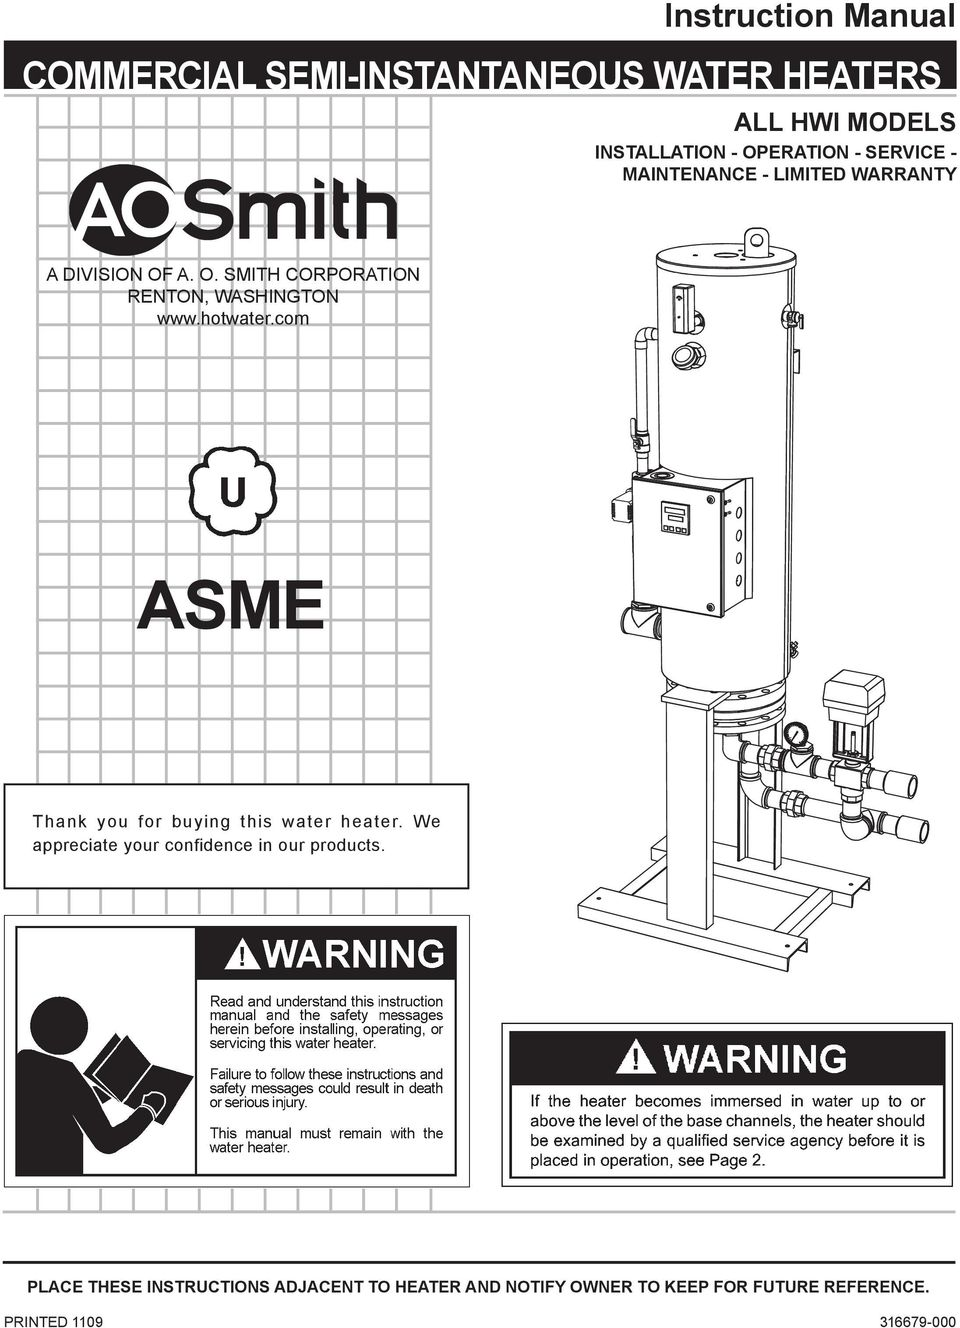 hight resolution of hotwater com asme thank you for buying this water heater we appreciate your confidence